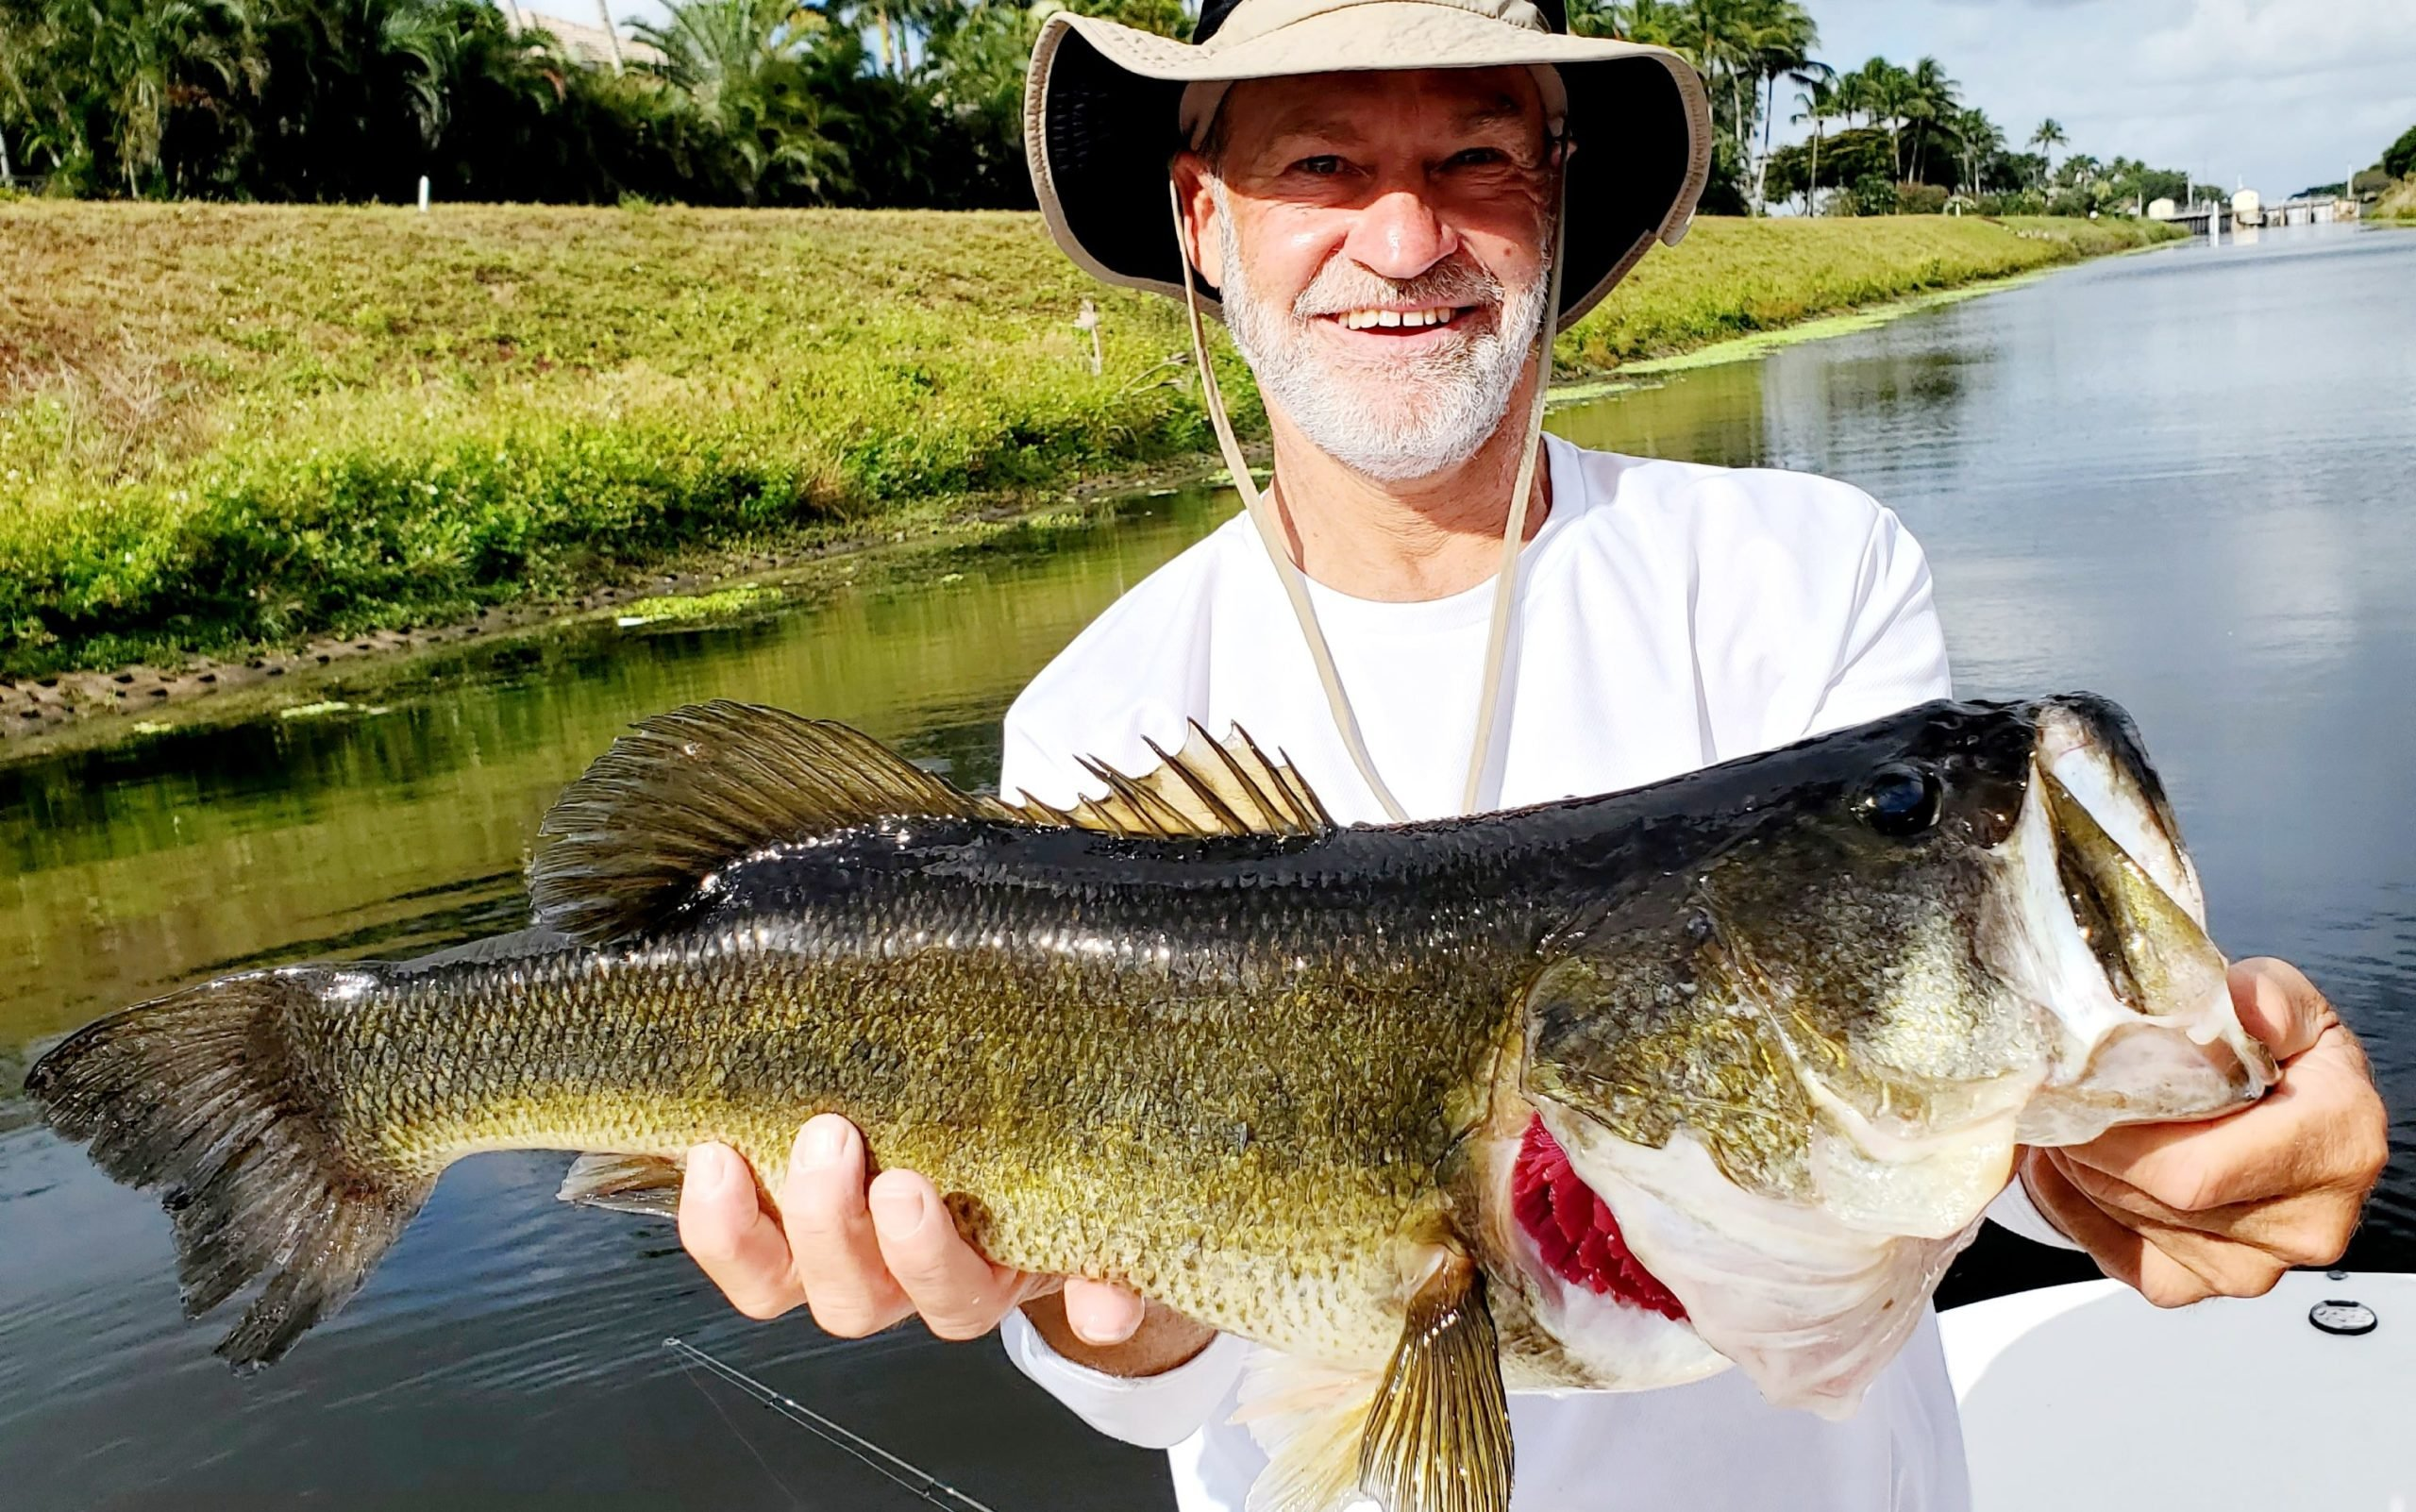 Happy angler in Florida with his freshly-caught Bass